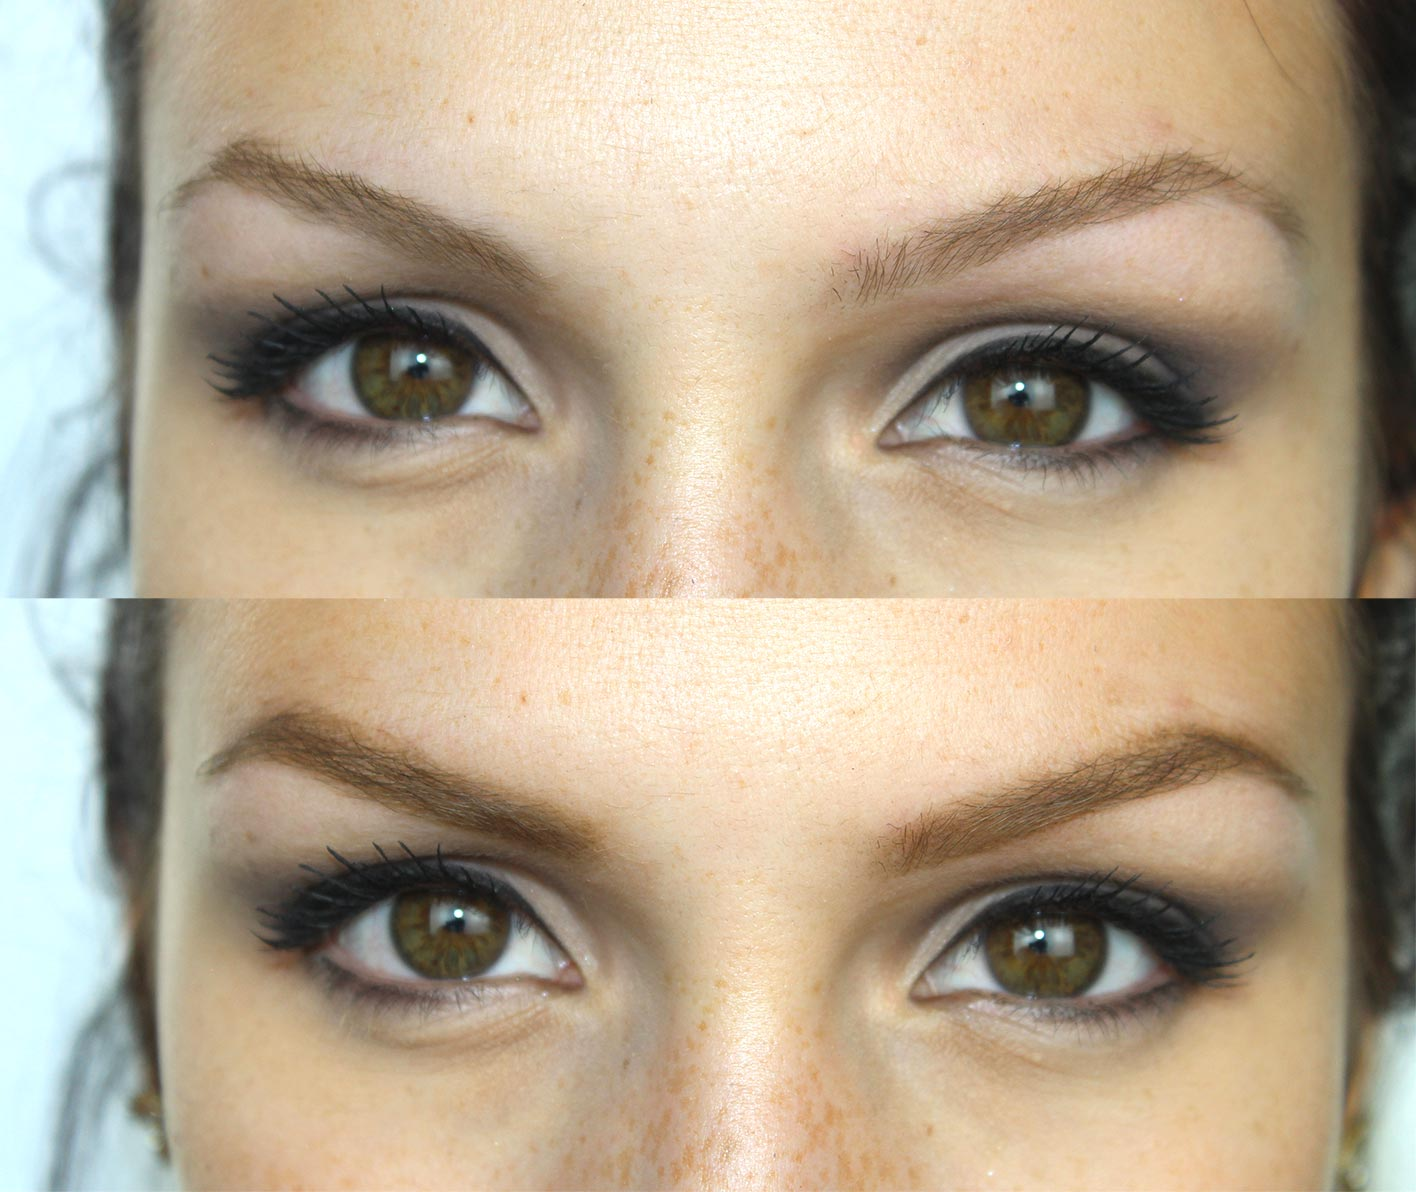 Top Comment maquiller ses sourcils | Maquillage Cynthia KM82